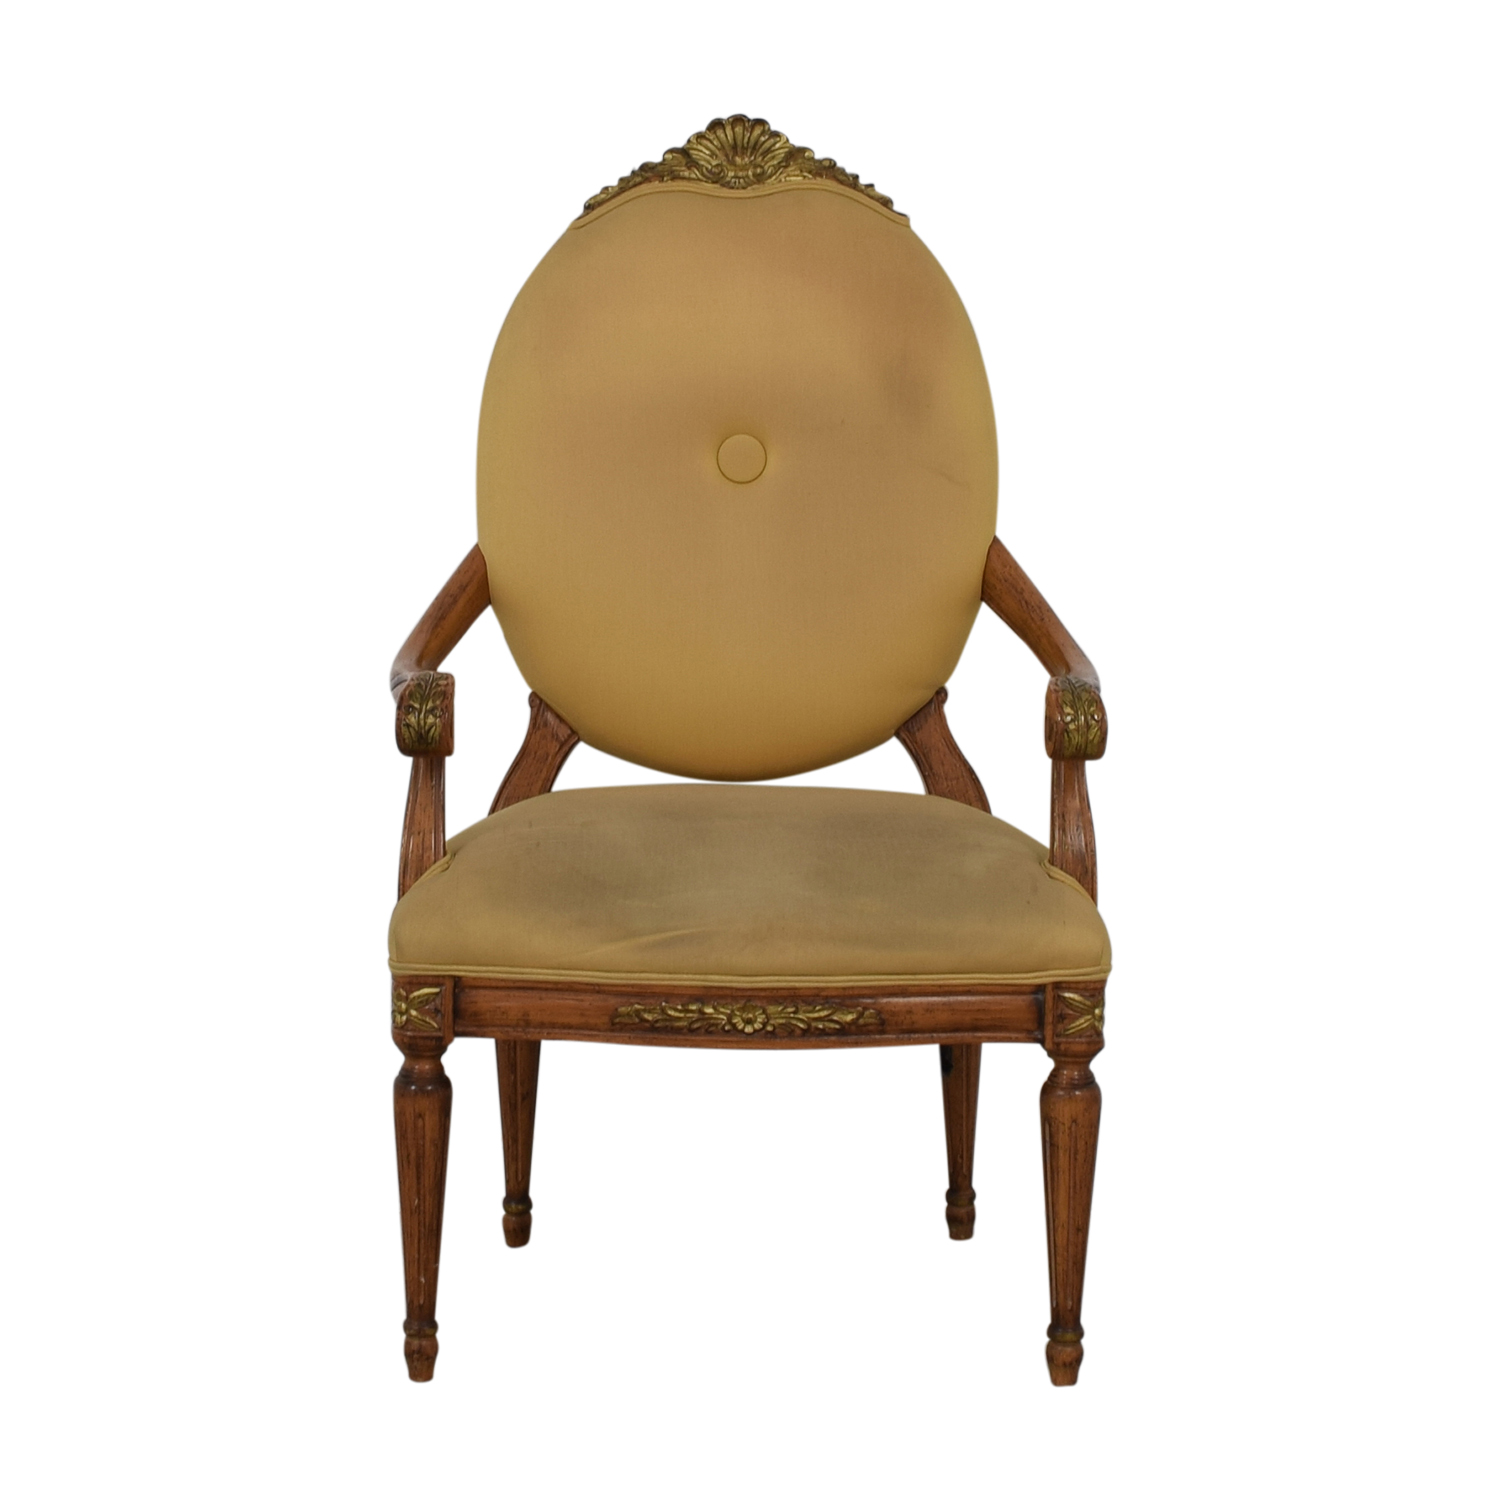 Beige Upholstered Carved Wood Chair nj